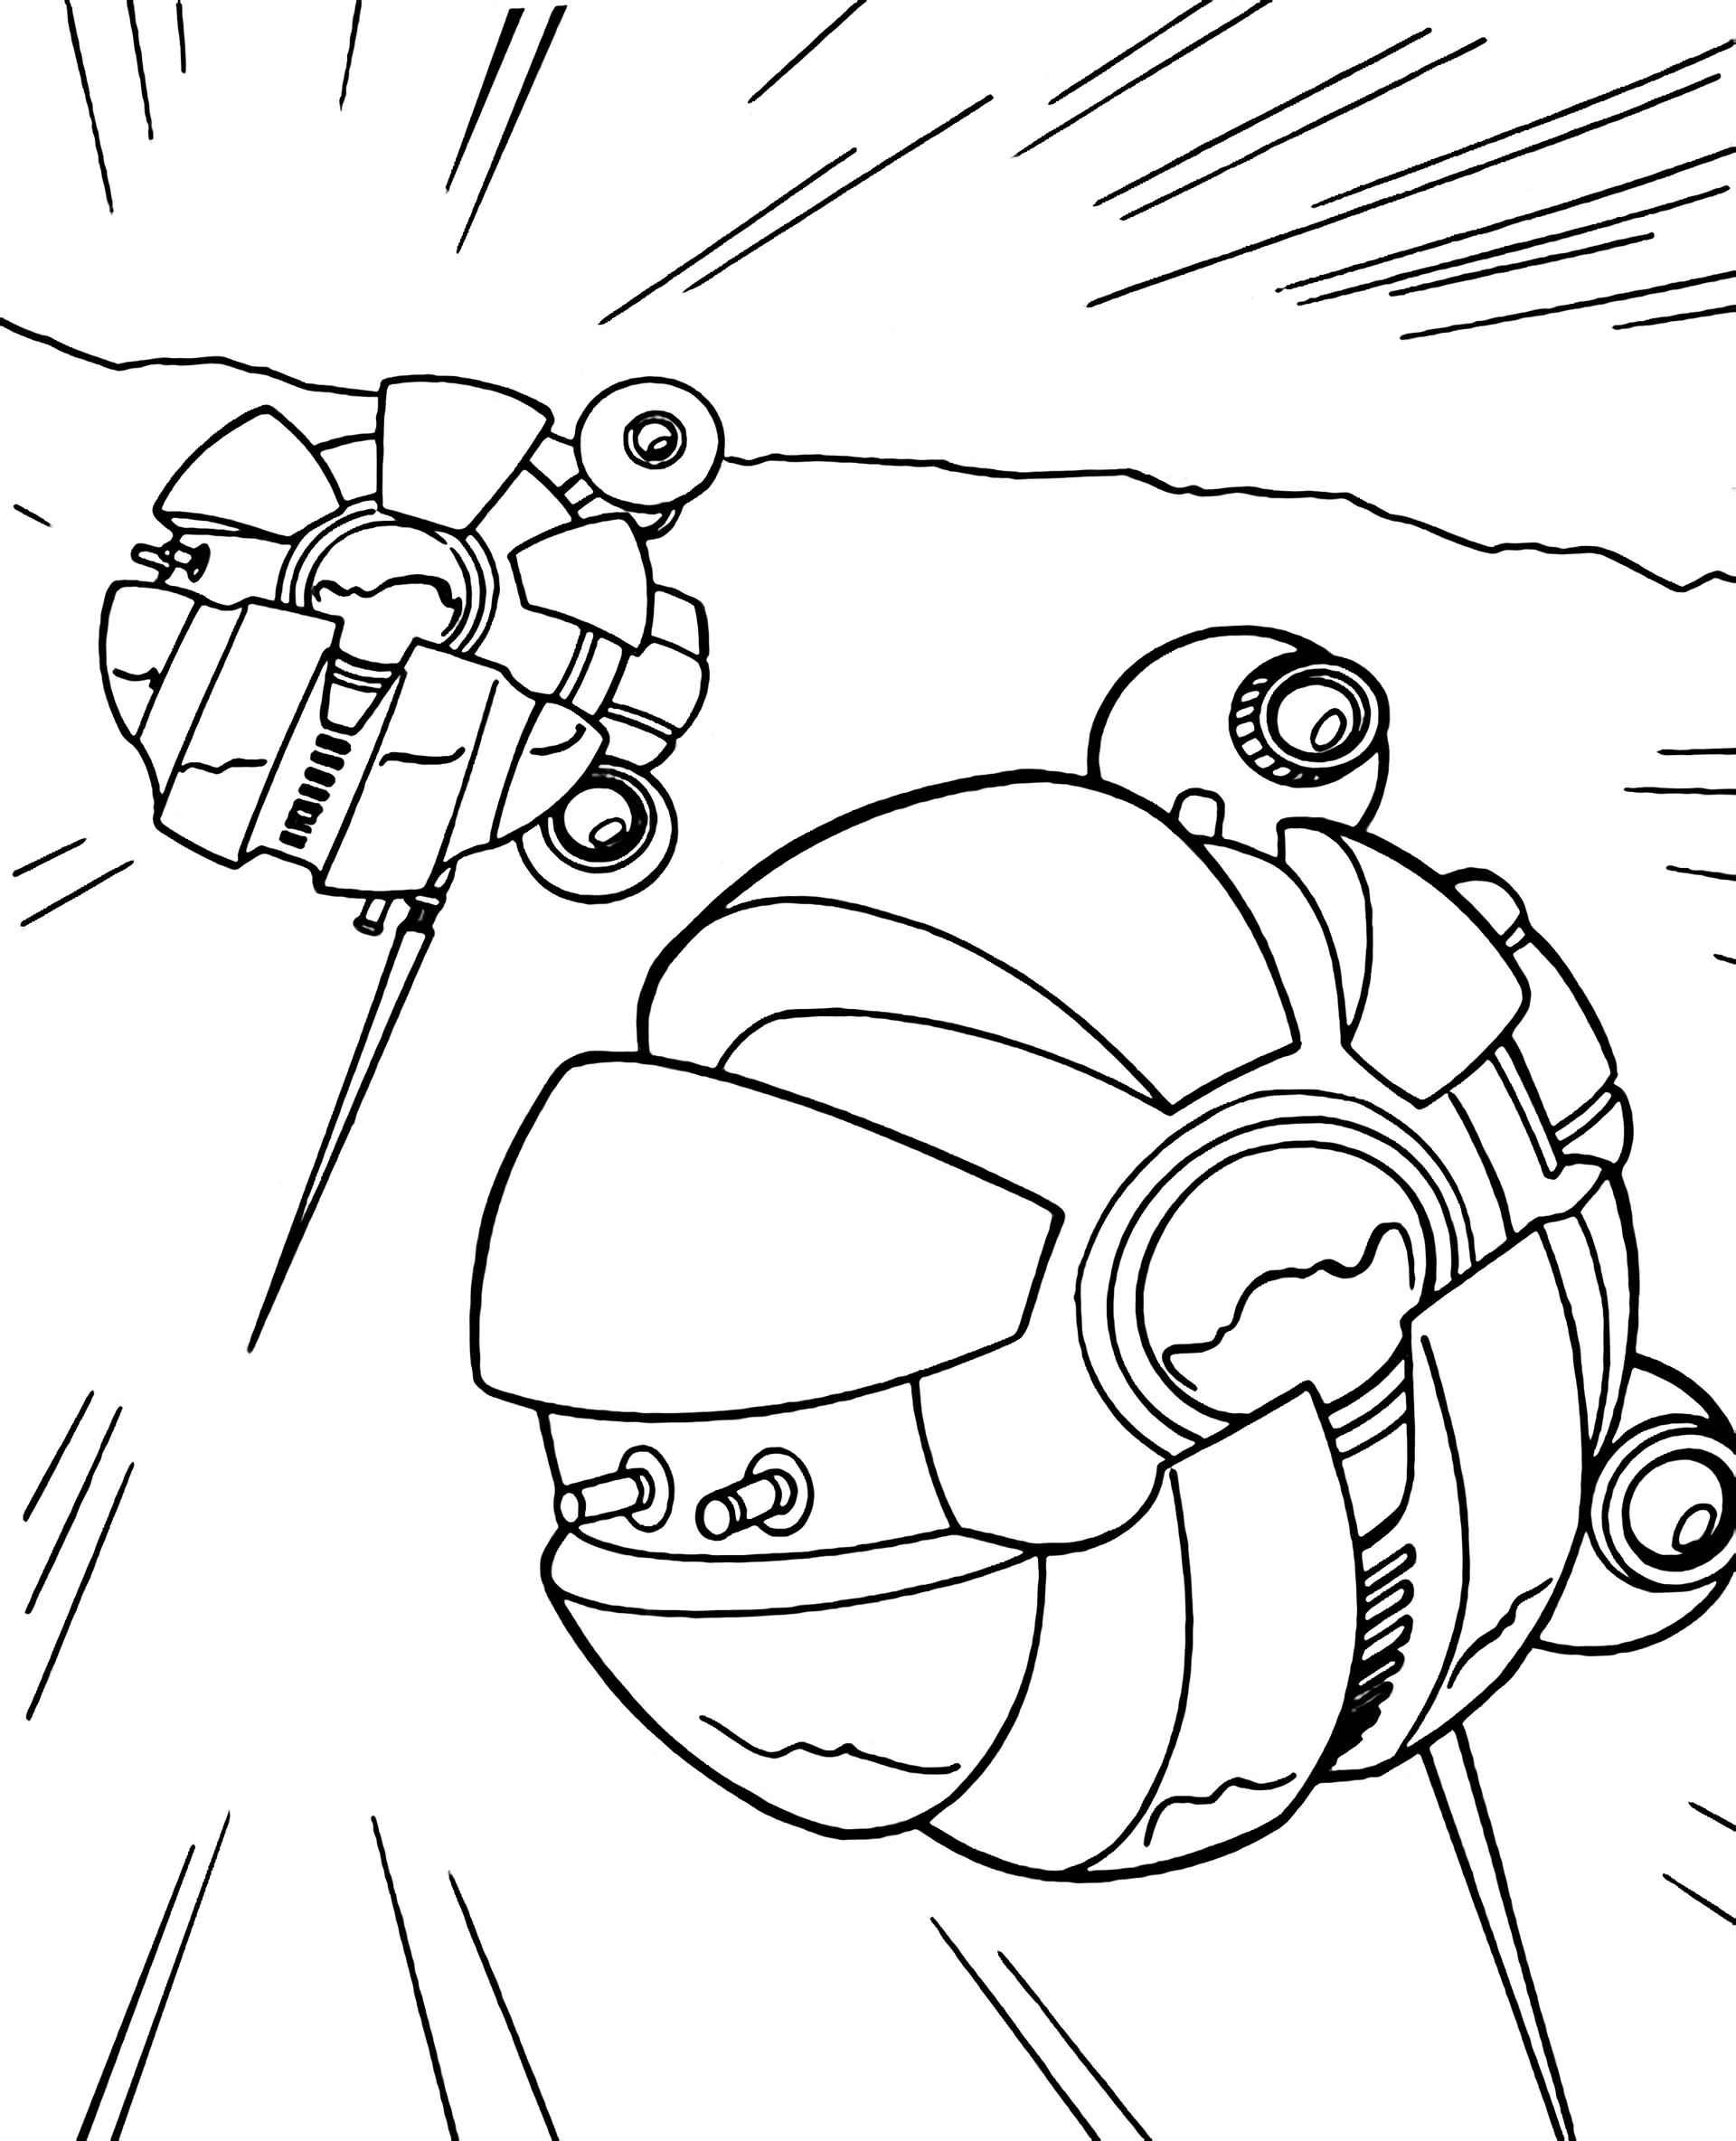 Spaceships From Star Wars Coloring Page